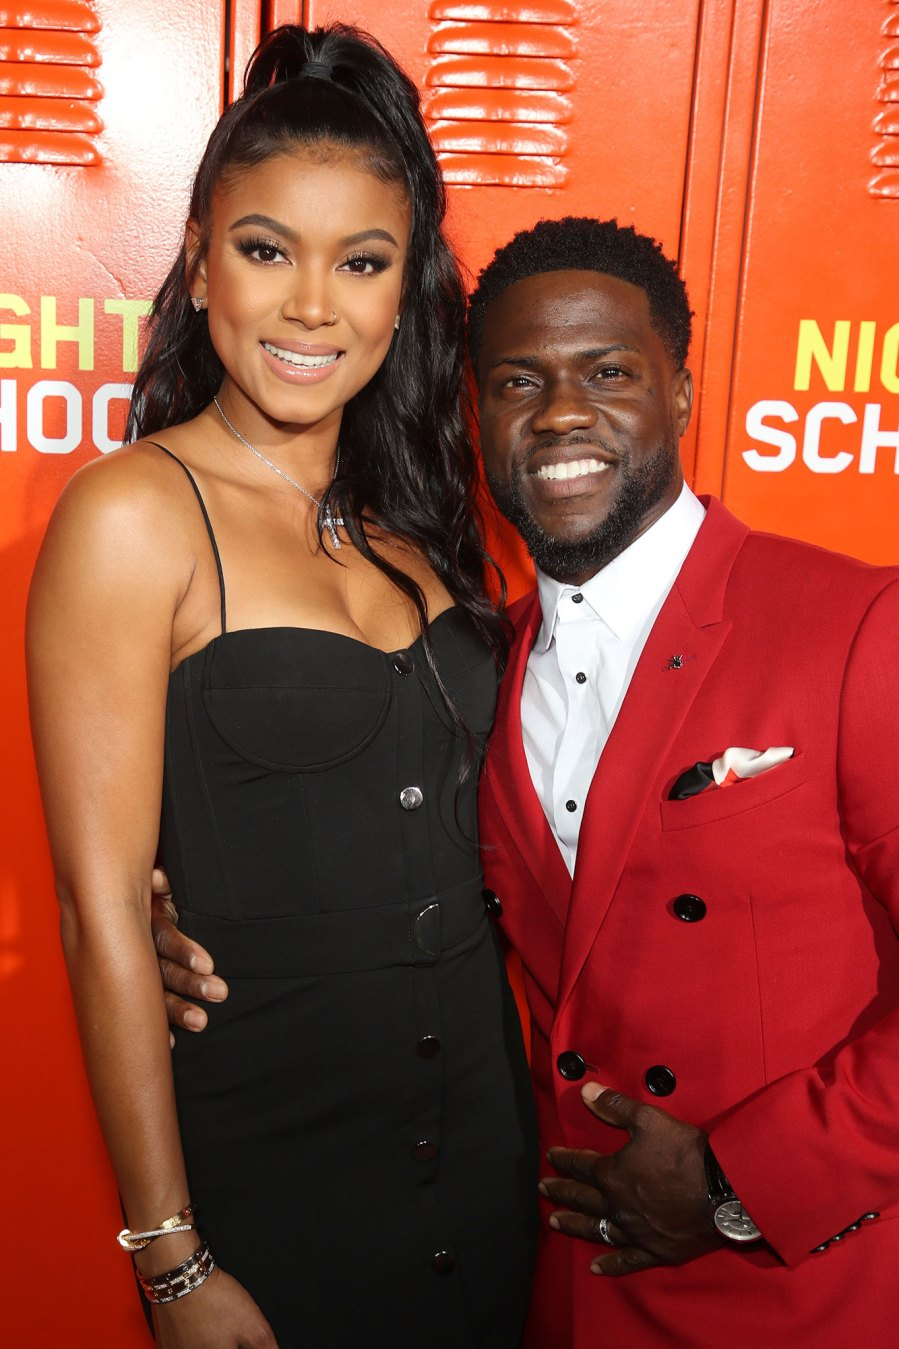 October 2017 Baby shower Kevin Hart and Eniko Parrish A Timeline of Their Relationship